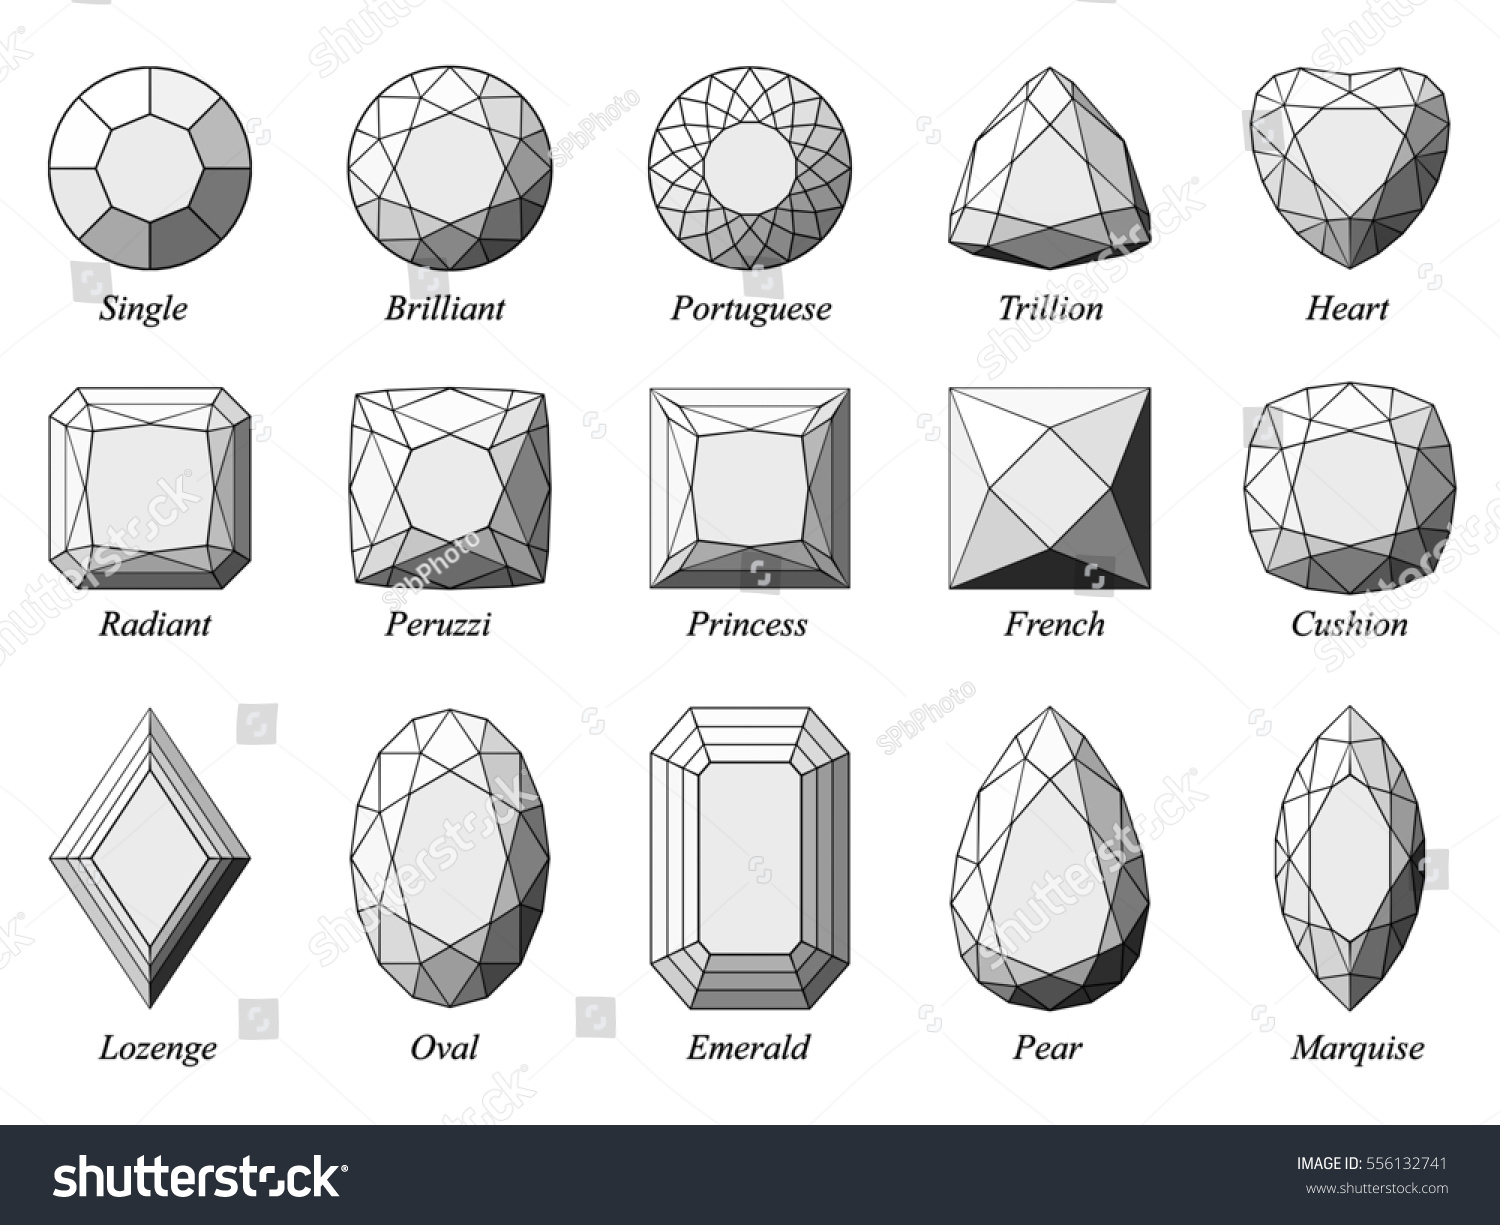 Set fifteen various diamond cut shape em ilustrao stock 556132741 set of fifteen various diamond cut shape and design diagrams with their names top view ccuart Gallery